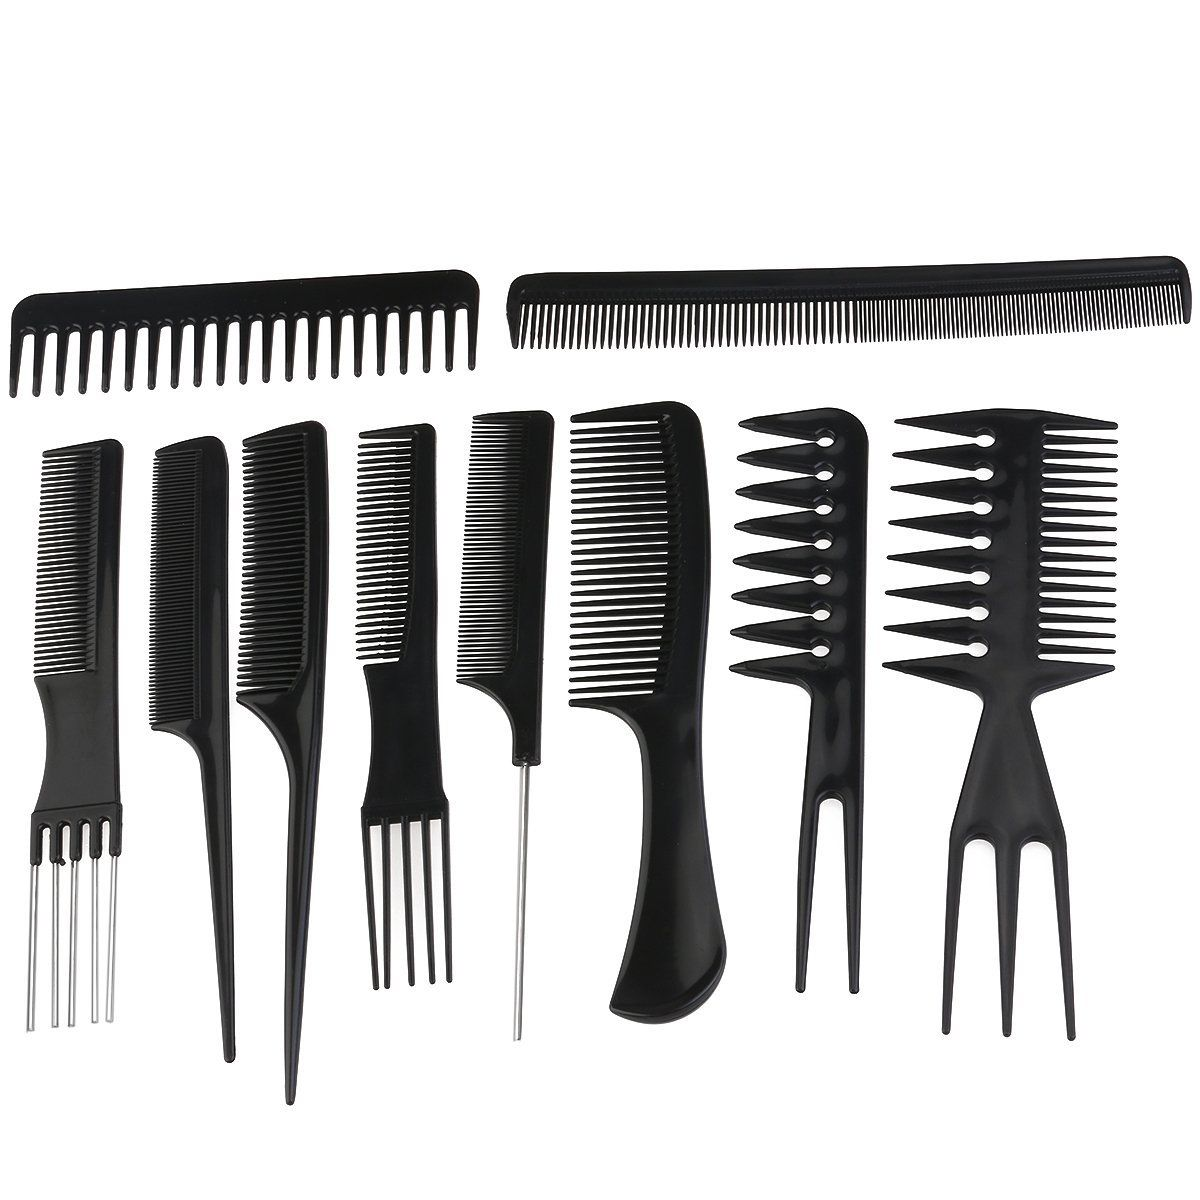 Rosenice Professional Salon Hair Styling Combs Hairdresser Accessories Tools Set 10 Pieces This Is An Hair Tool Set Styling Comb Professional Hair Tools